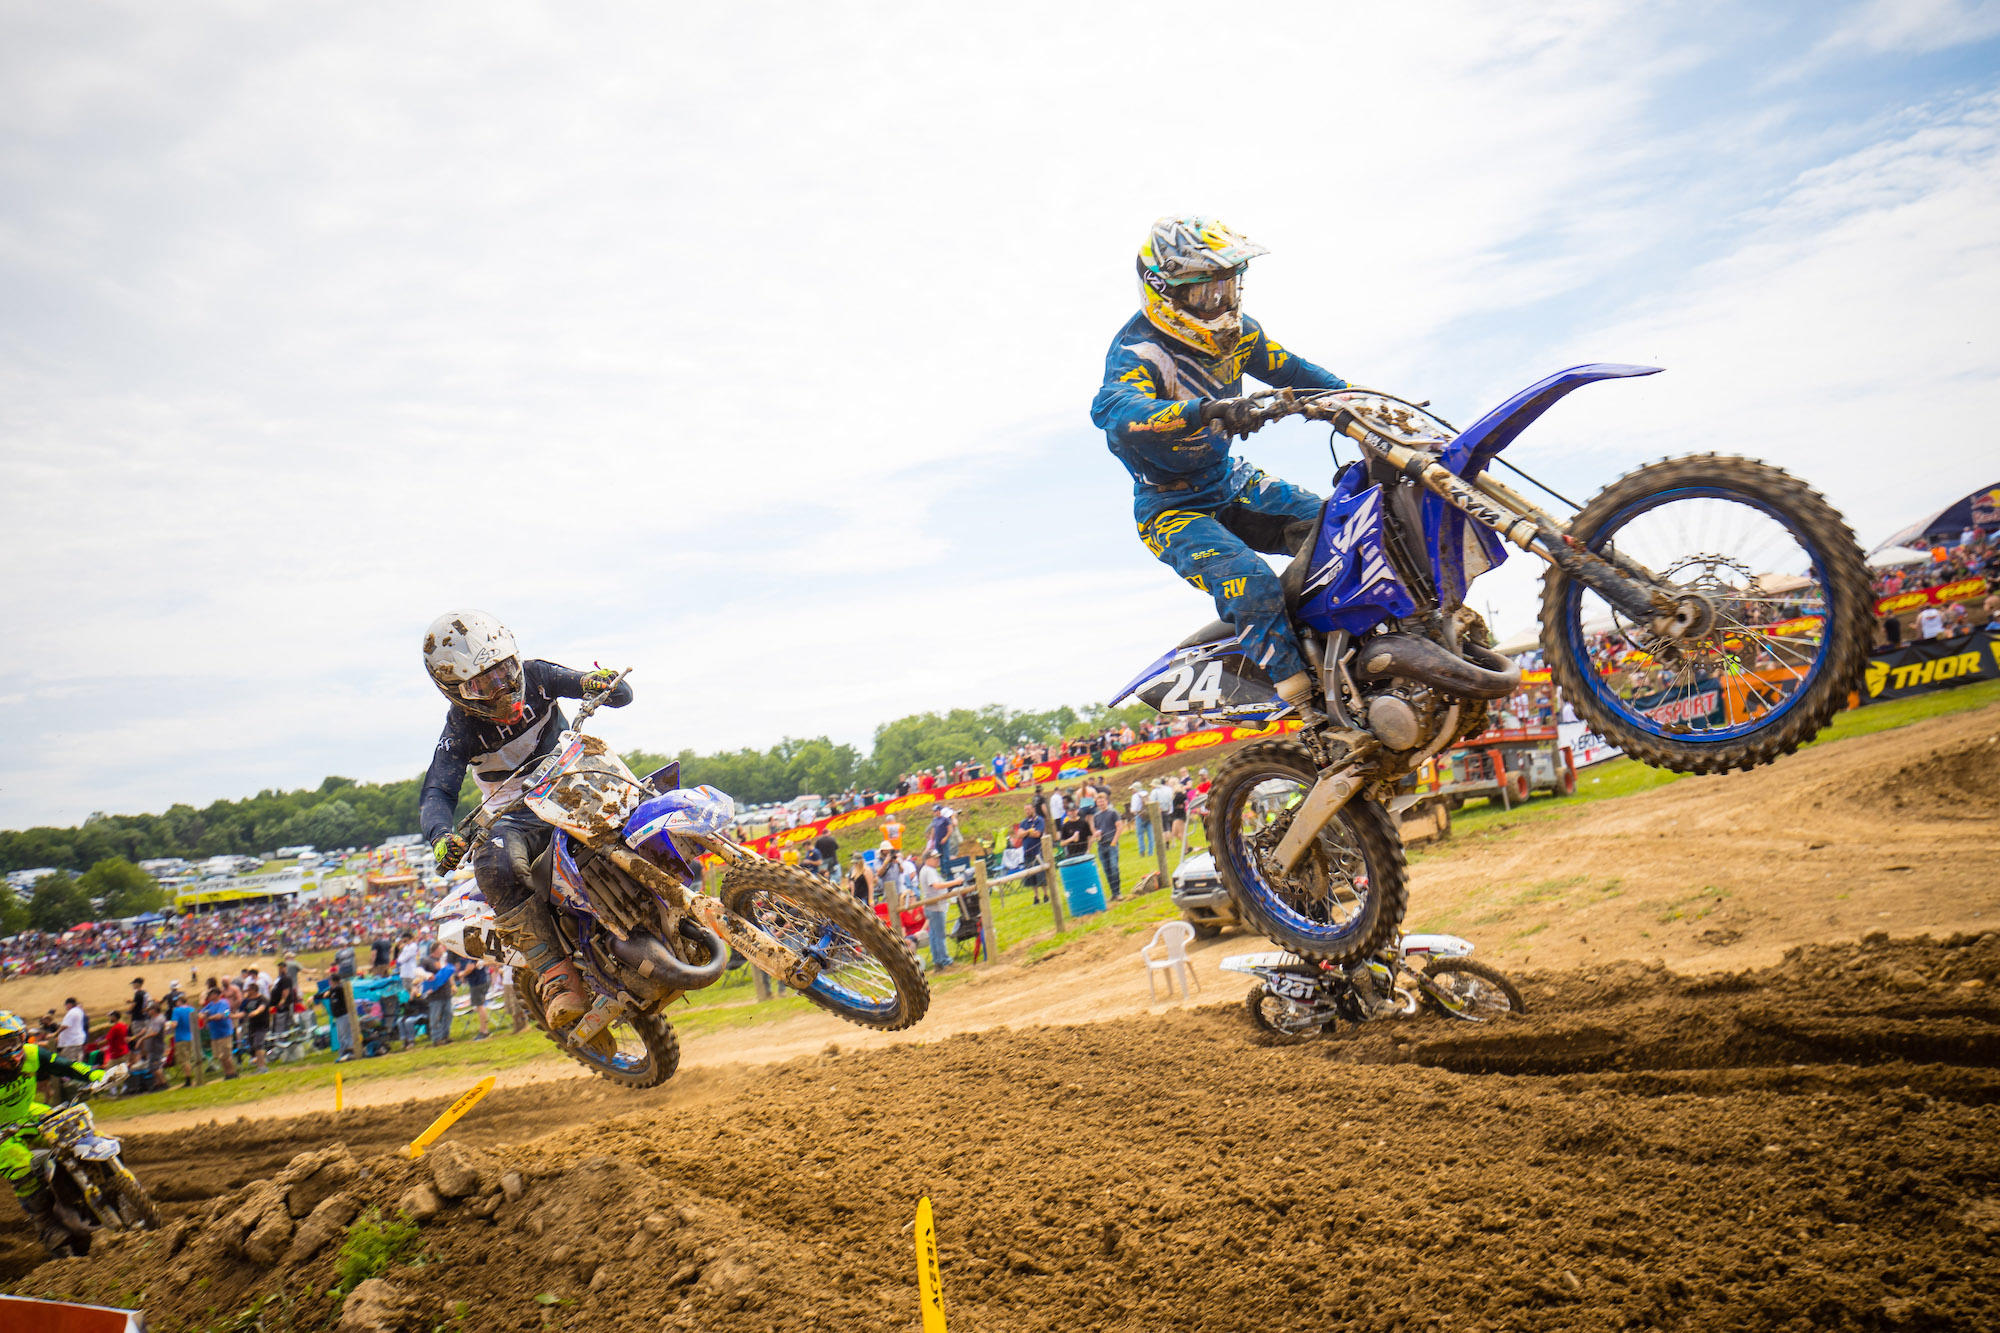 The 125 All-Star Series will not be a part of the 2020 Lucas Oil Pro Motocross Championship due to social distancing policies being implemented for the upcoming season.